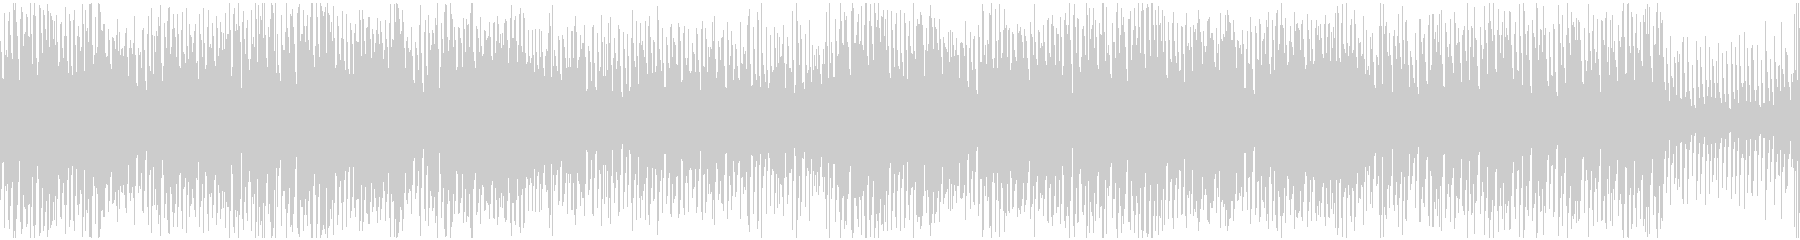 A refreshing commercial style of whistling and fun pop's unreproduced waveform